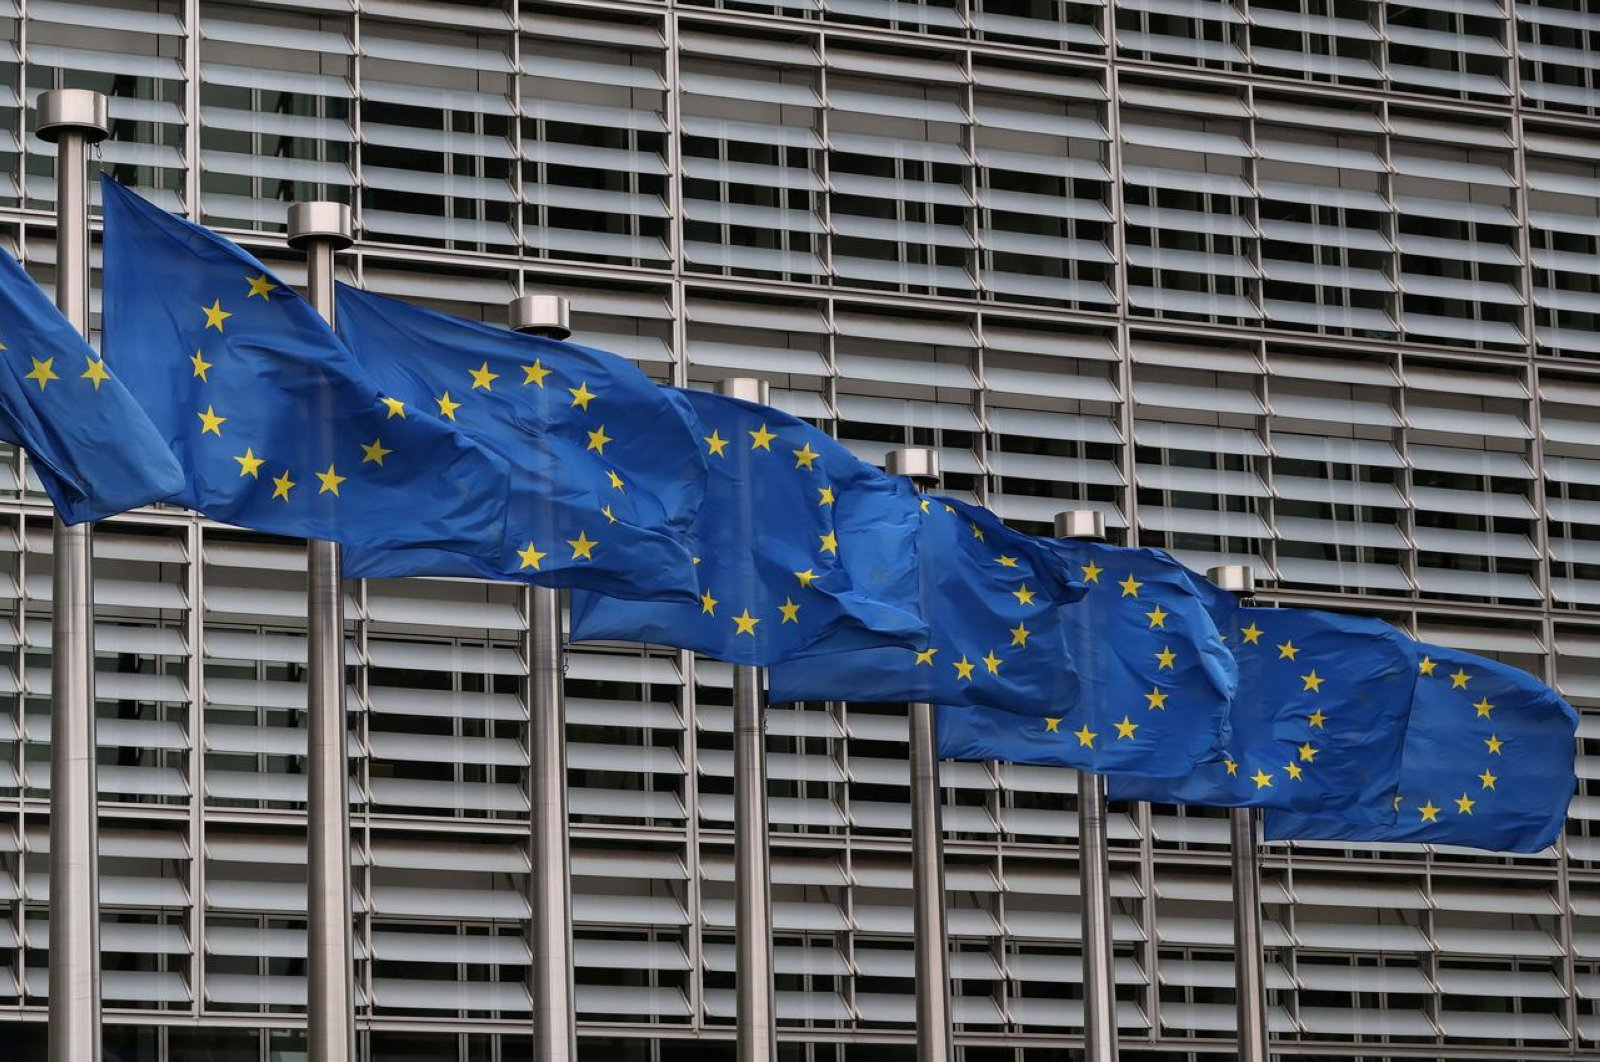 European Union flags fly near the European Commission headquarters in Brussels, Belgium, Oct. 4, 2019. (Reuters Photo)